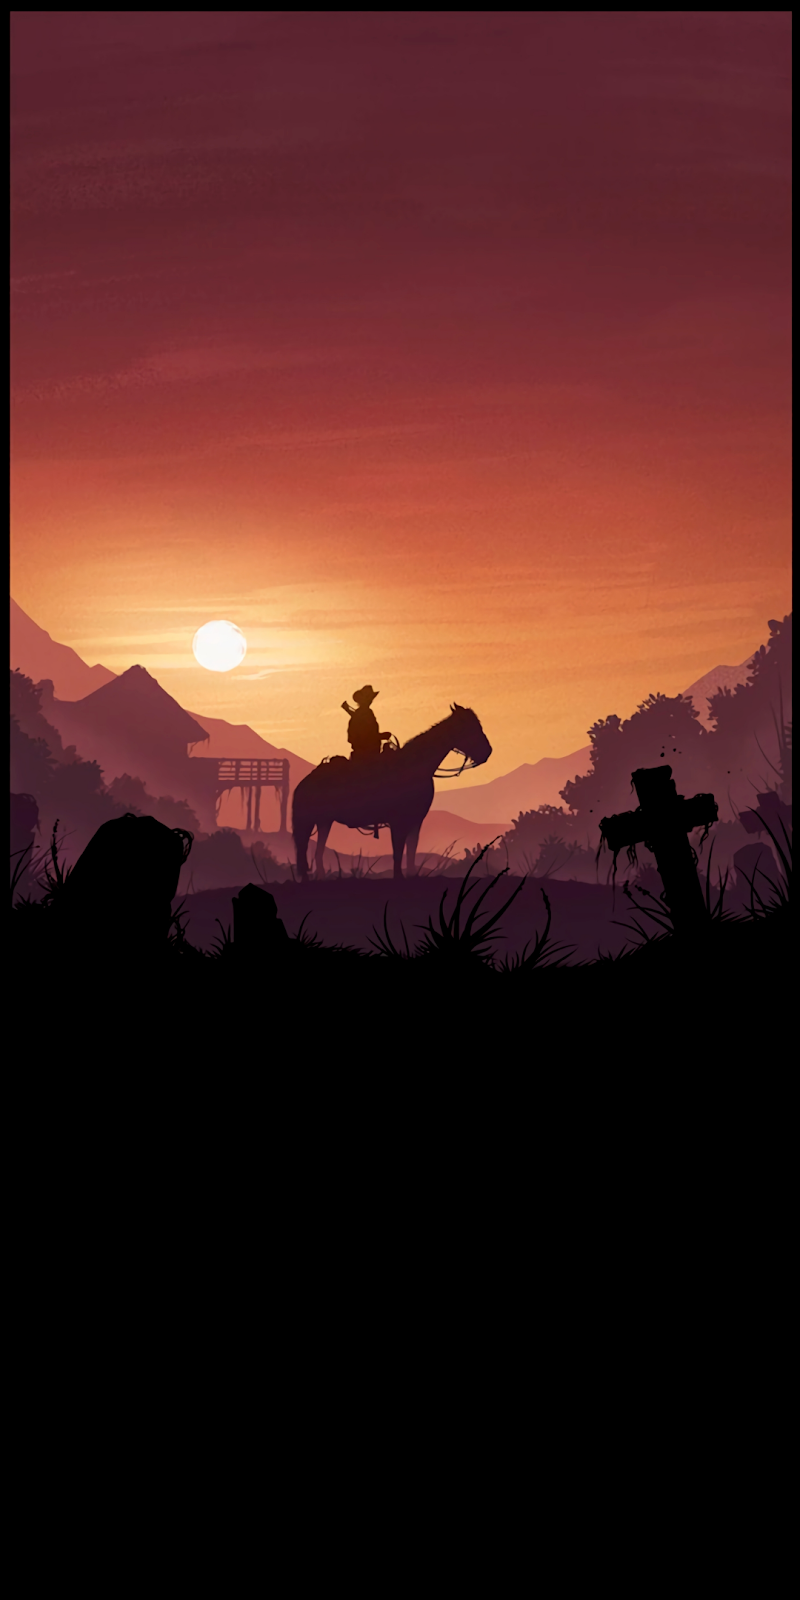 26 Red Dead Redemption 2 4k Wallpapers On Wallpapersafari